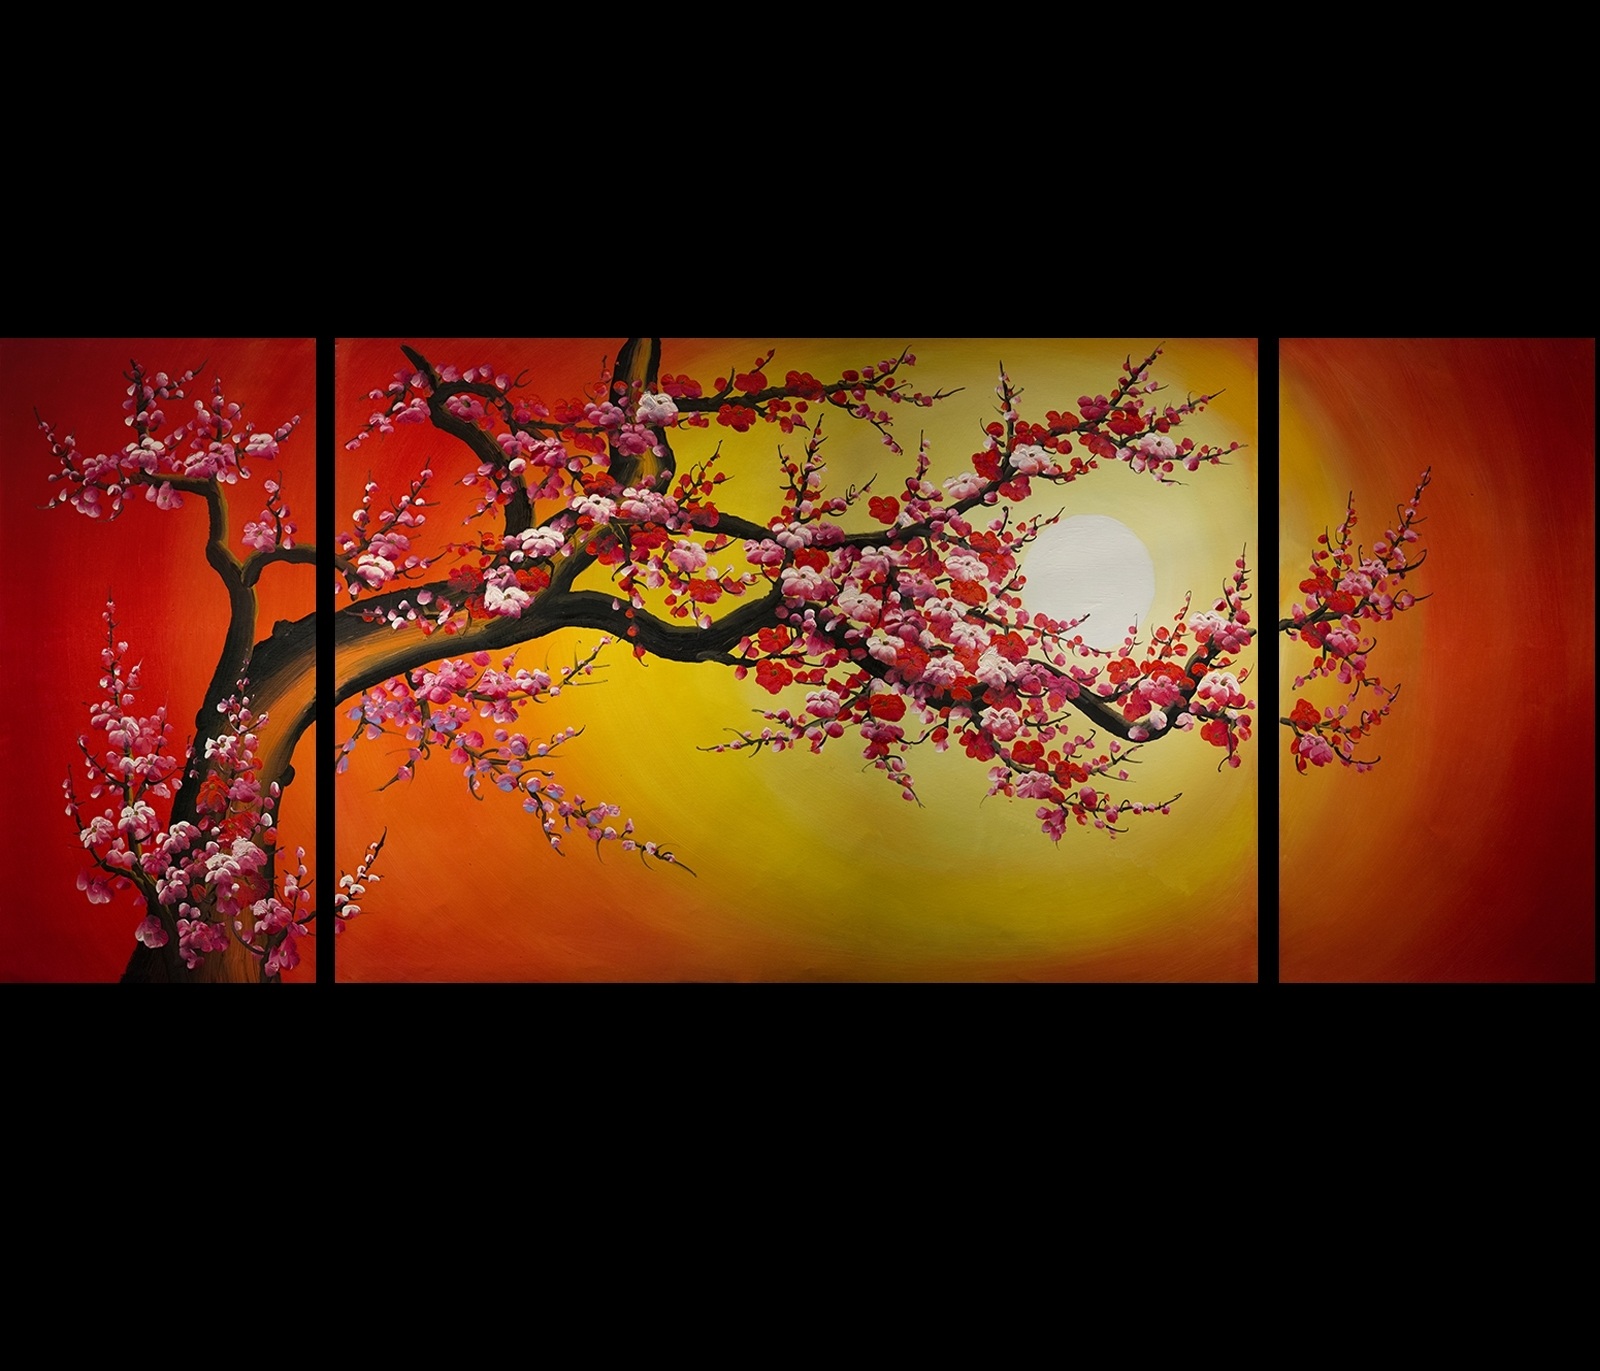 Chinese Cherry Blossom Feng Shui Oil Painting Abstract Art Modern In Best And Newest Abstract Oil Painting Wall Art (View 7 of 20)